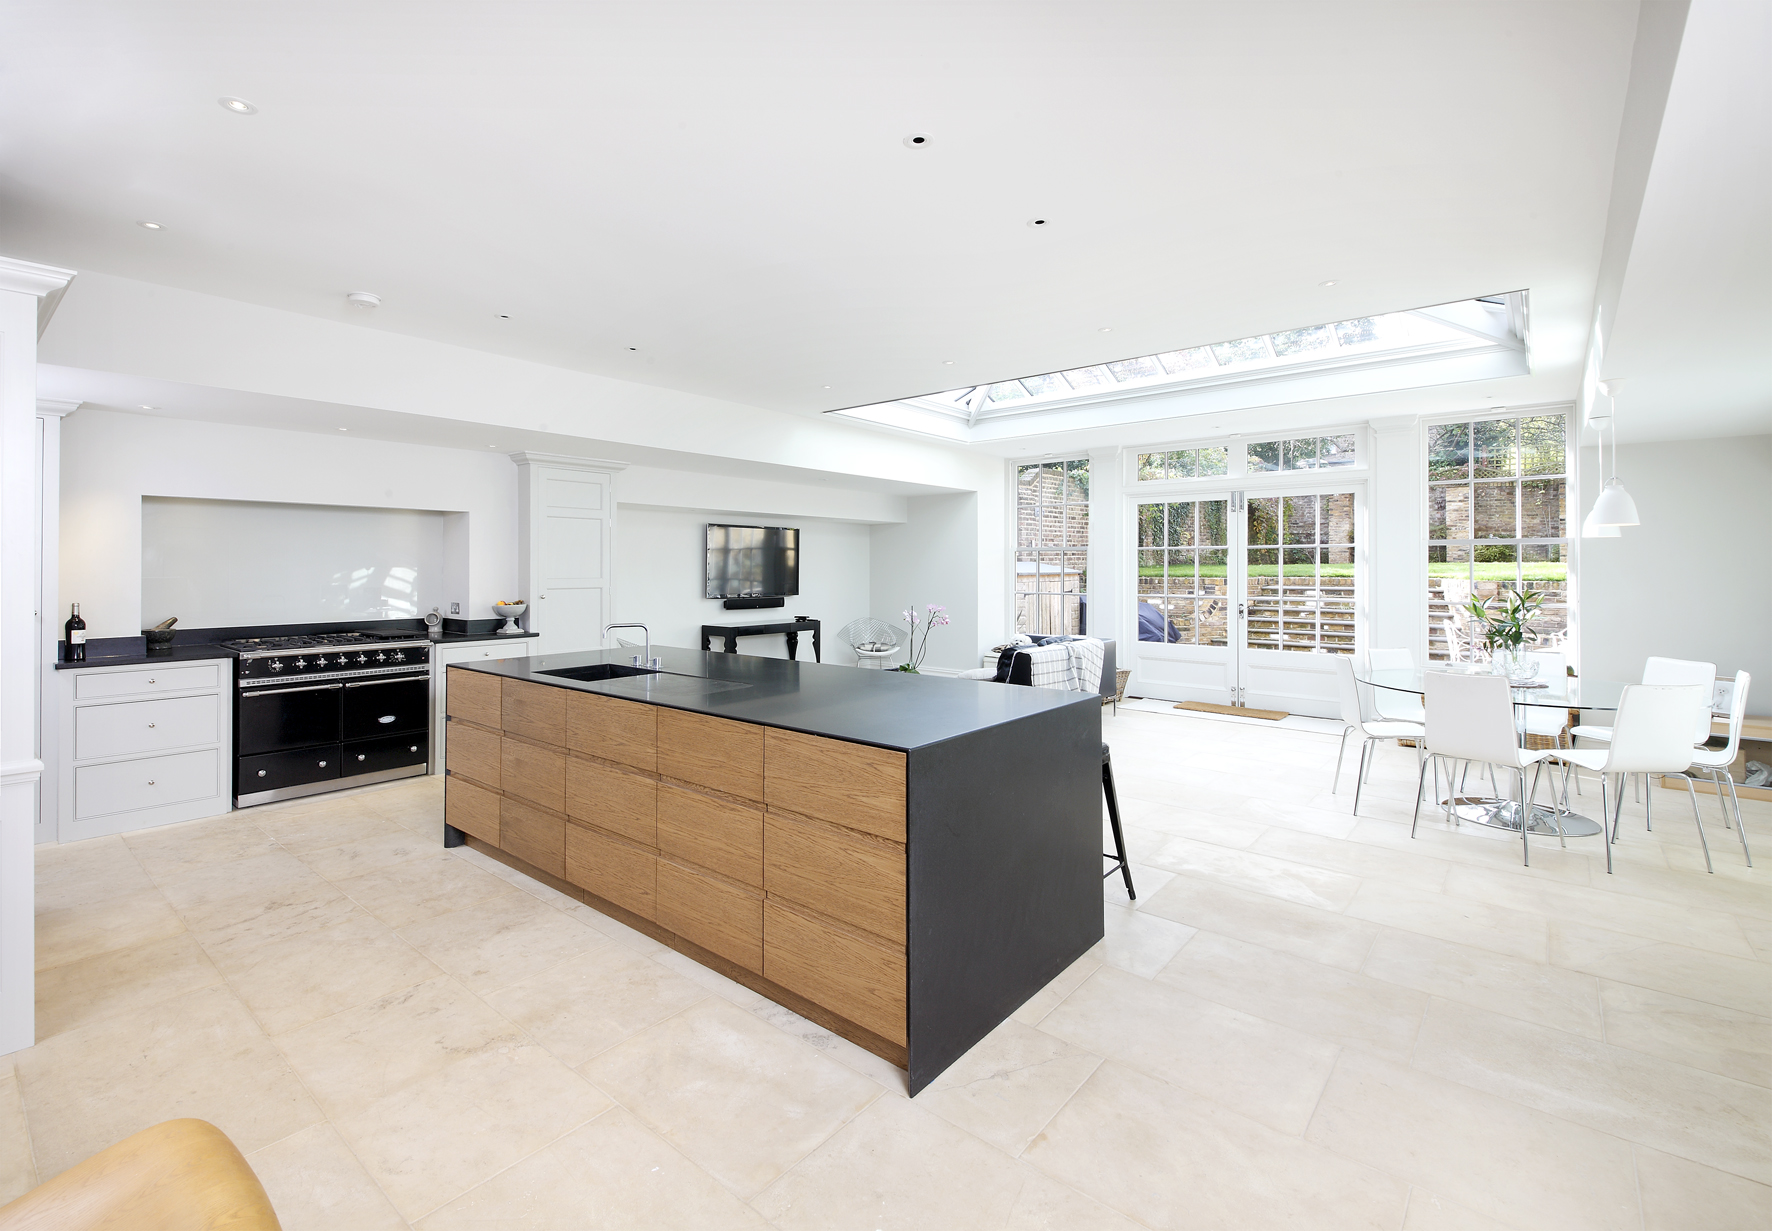 creativemass - roof lights, natural light, open plan living, kitchen, dining, interior